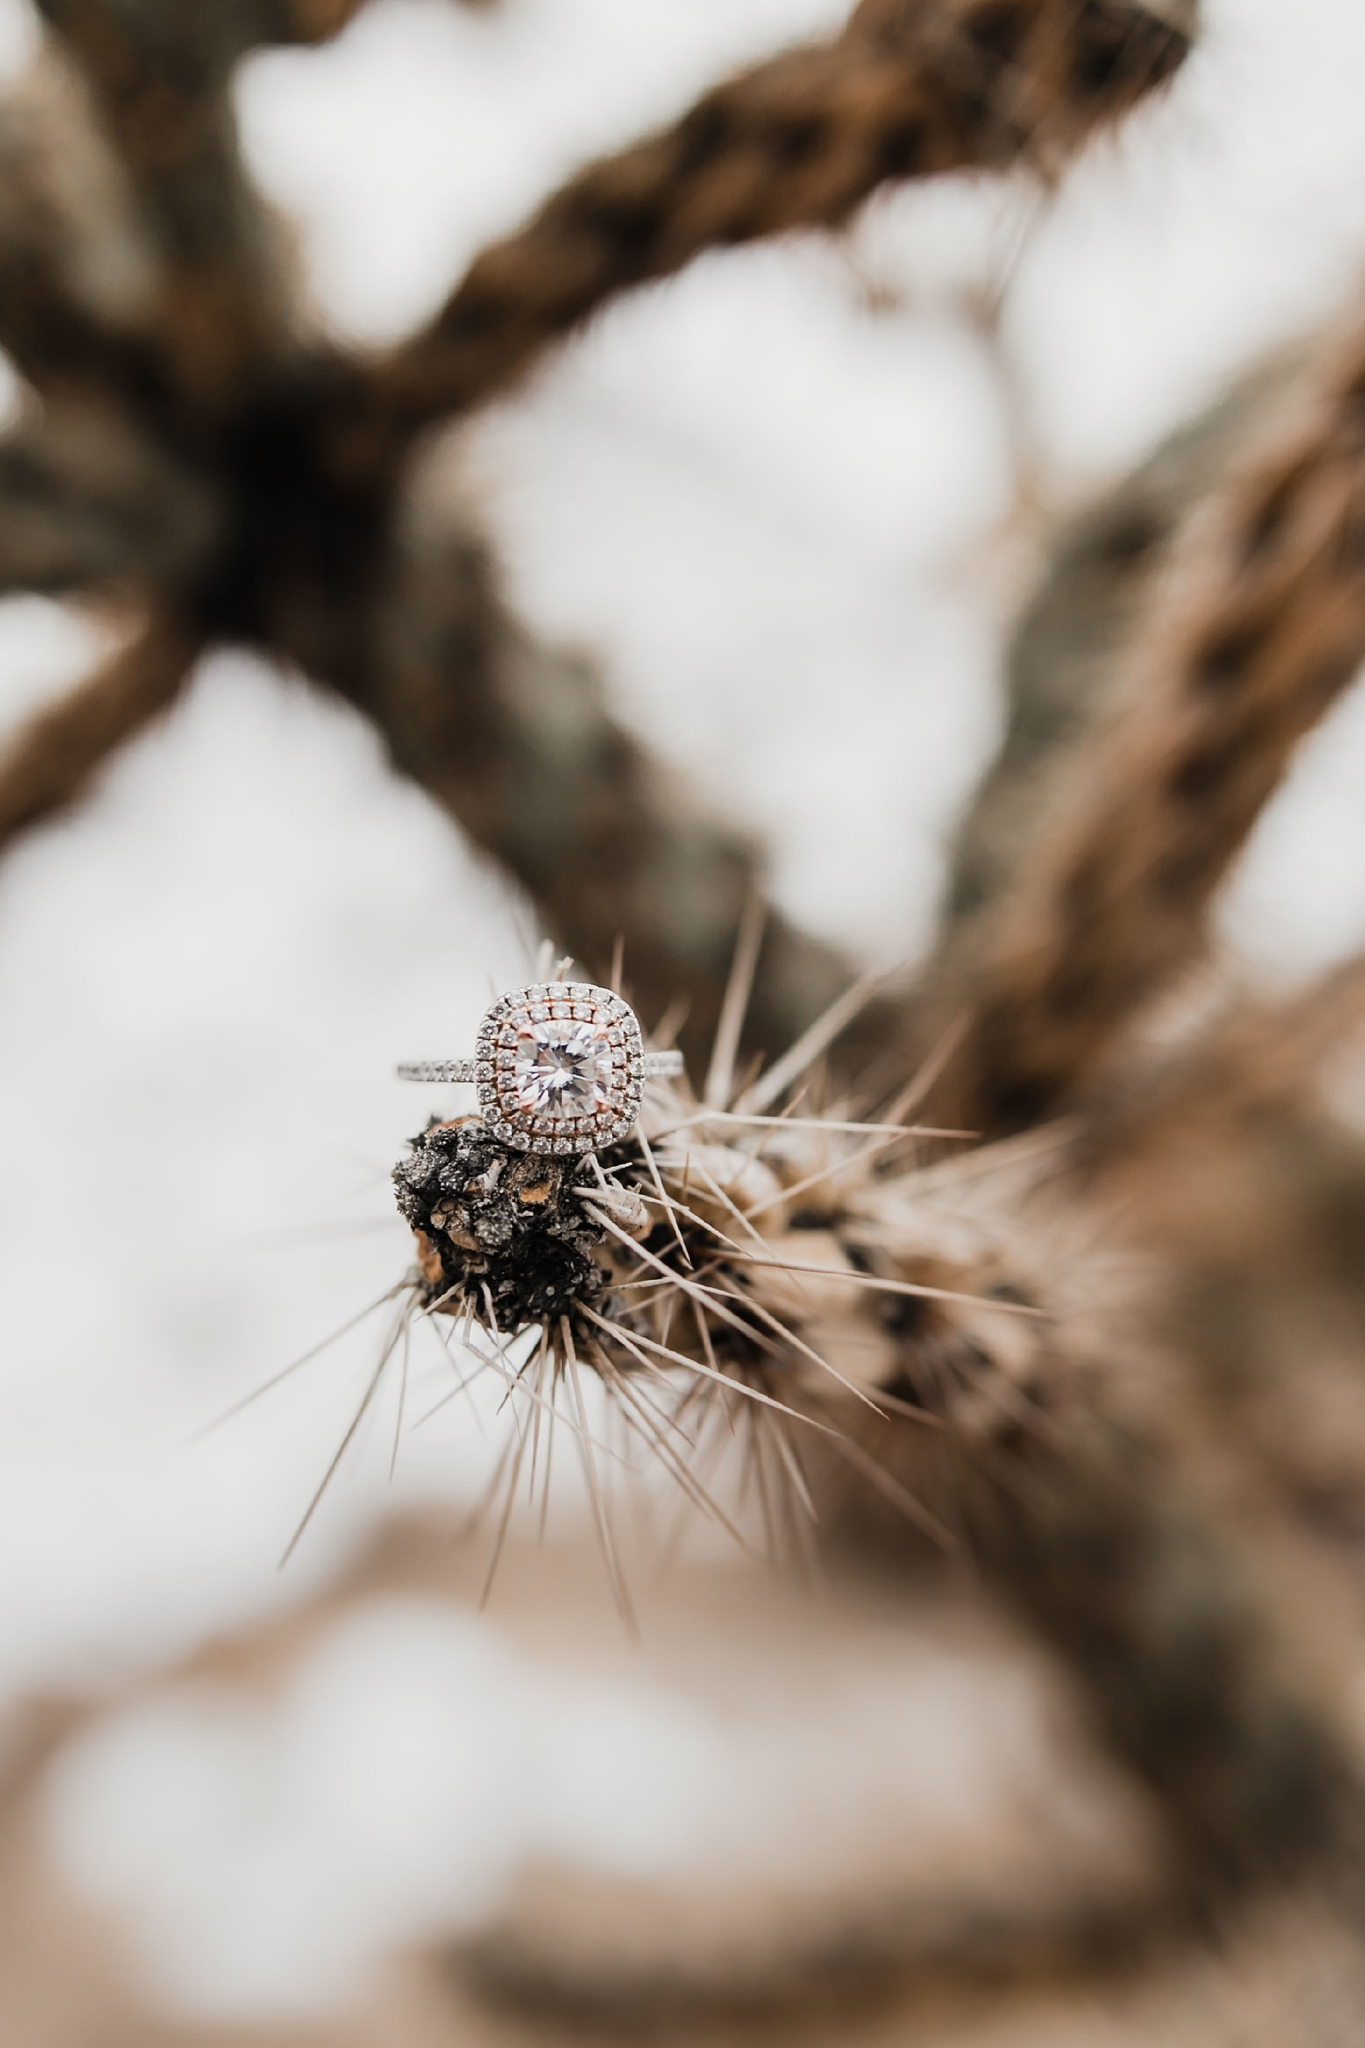 Alicia+lucia+photography+-+albuquerque+wedding+photographer+-+santa+fe+wedding+photography+-+new+mexico+wedding+photographer+-+new+mexico+wedding+-+engagement+-+albuquerque+engagement+-+winter+engagement+-+hyatt+tamaya+wedding_0022.jpg